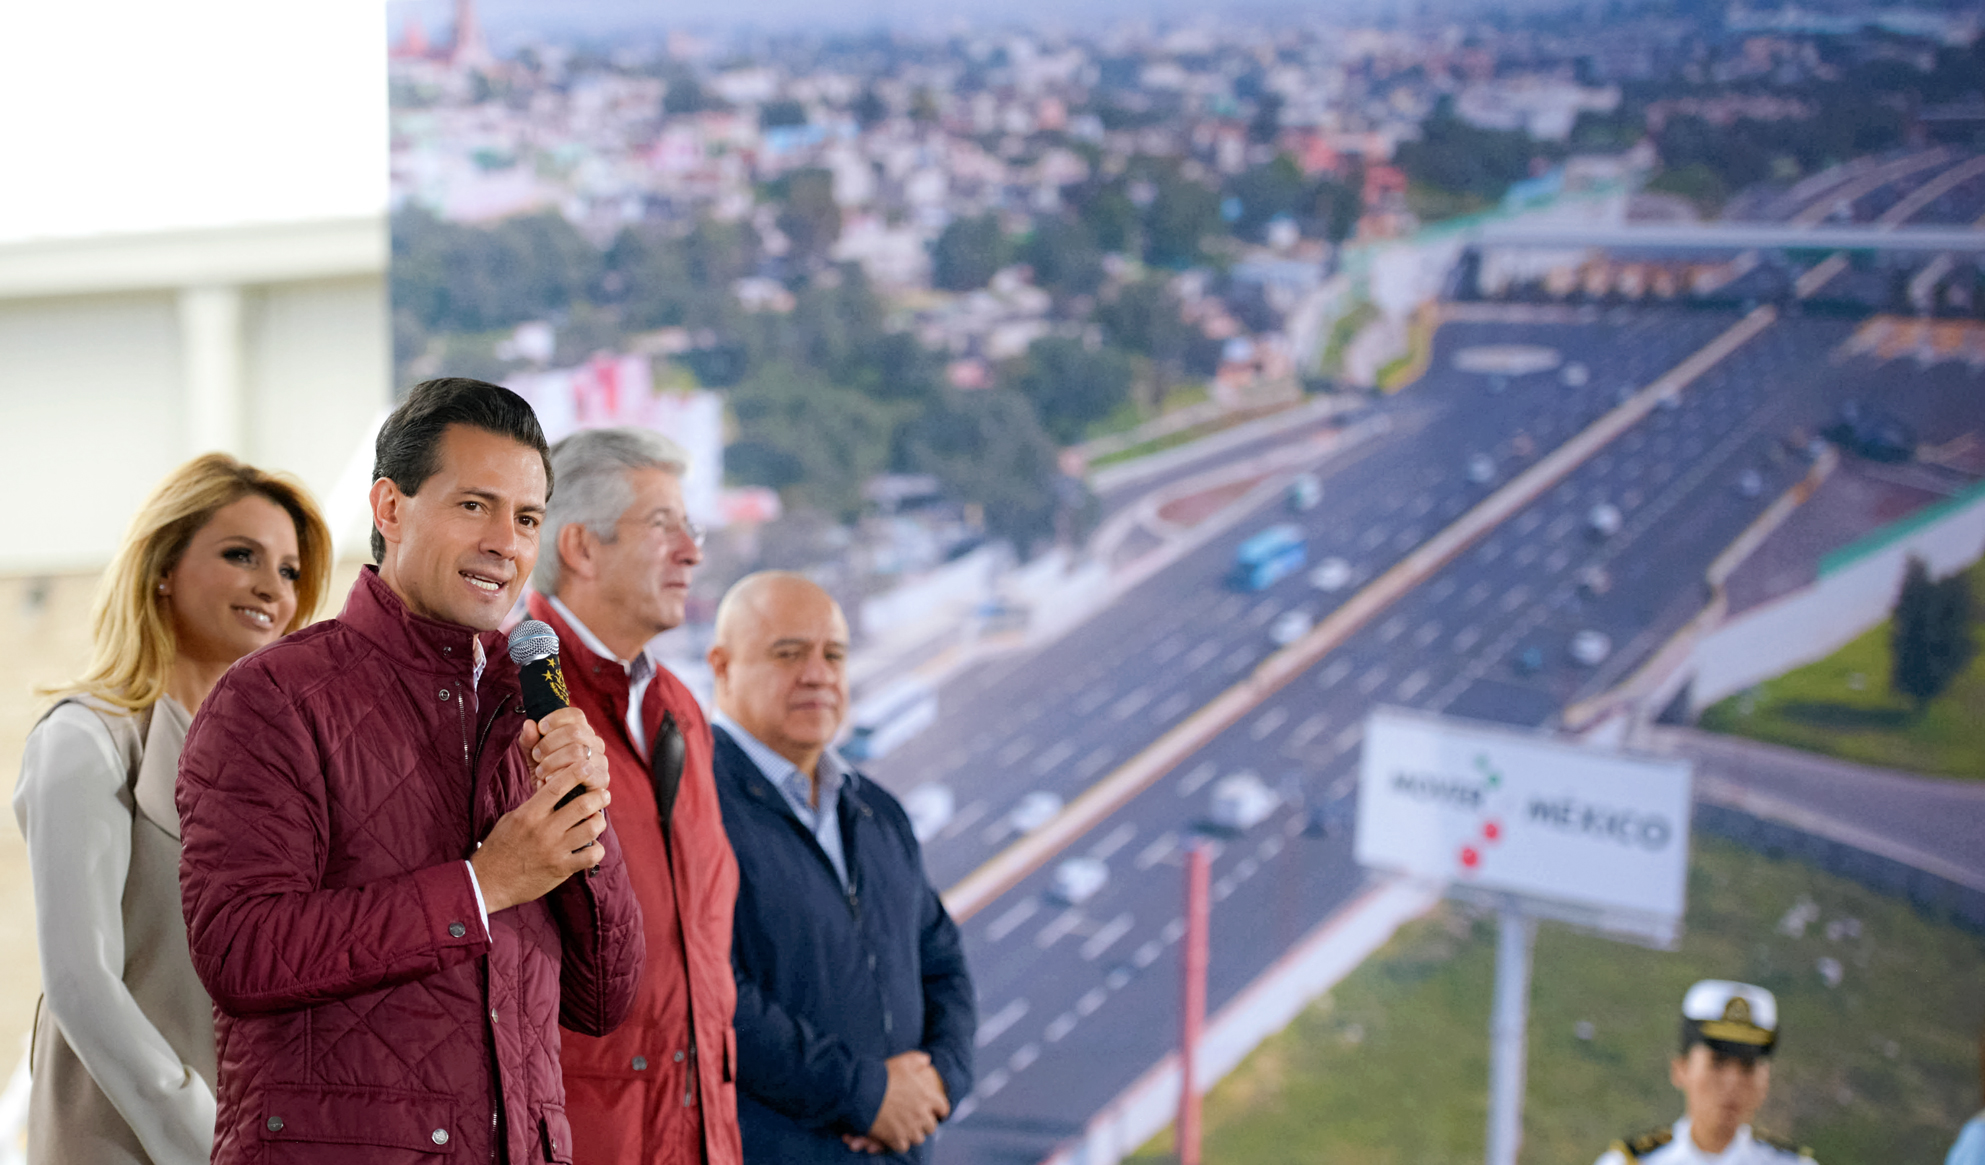 The government has the goal of completing 52 highways; to date, it has delivered 26 with a total length of 1,600 kilometers, he said.